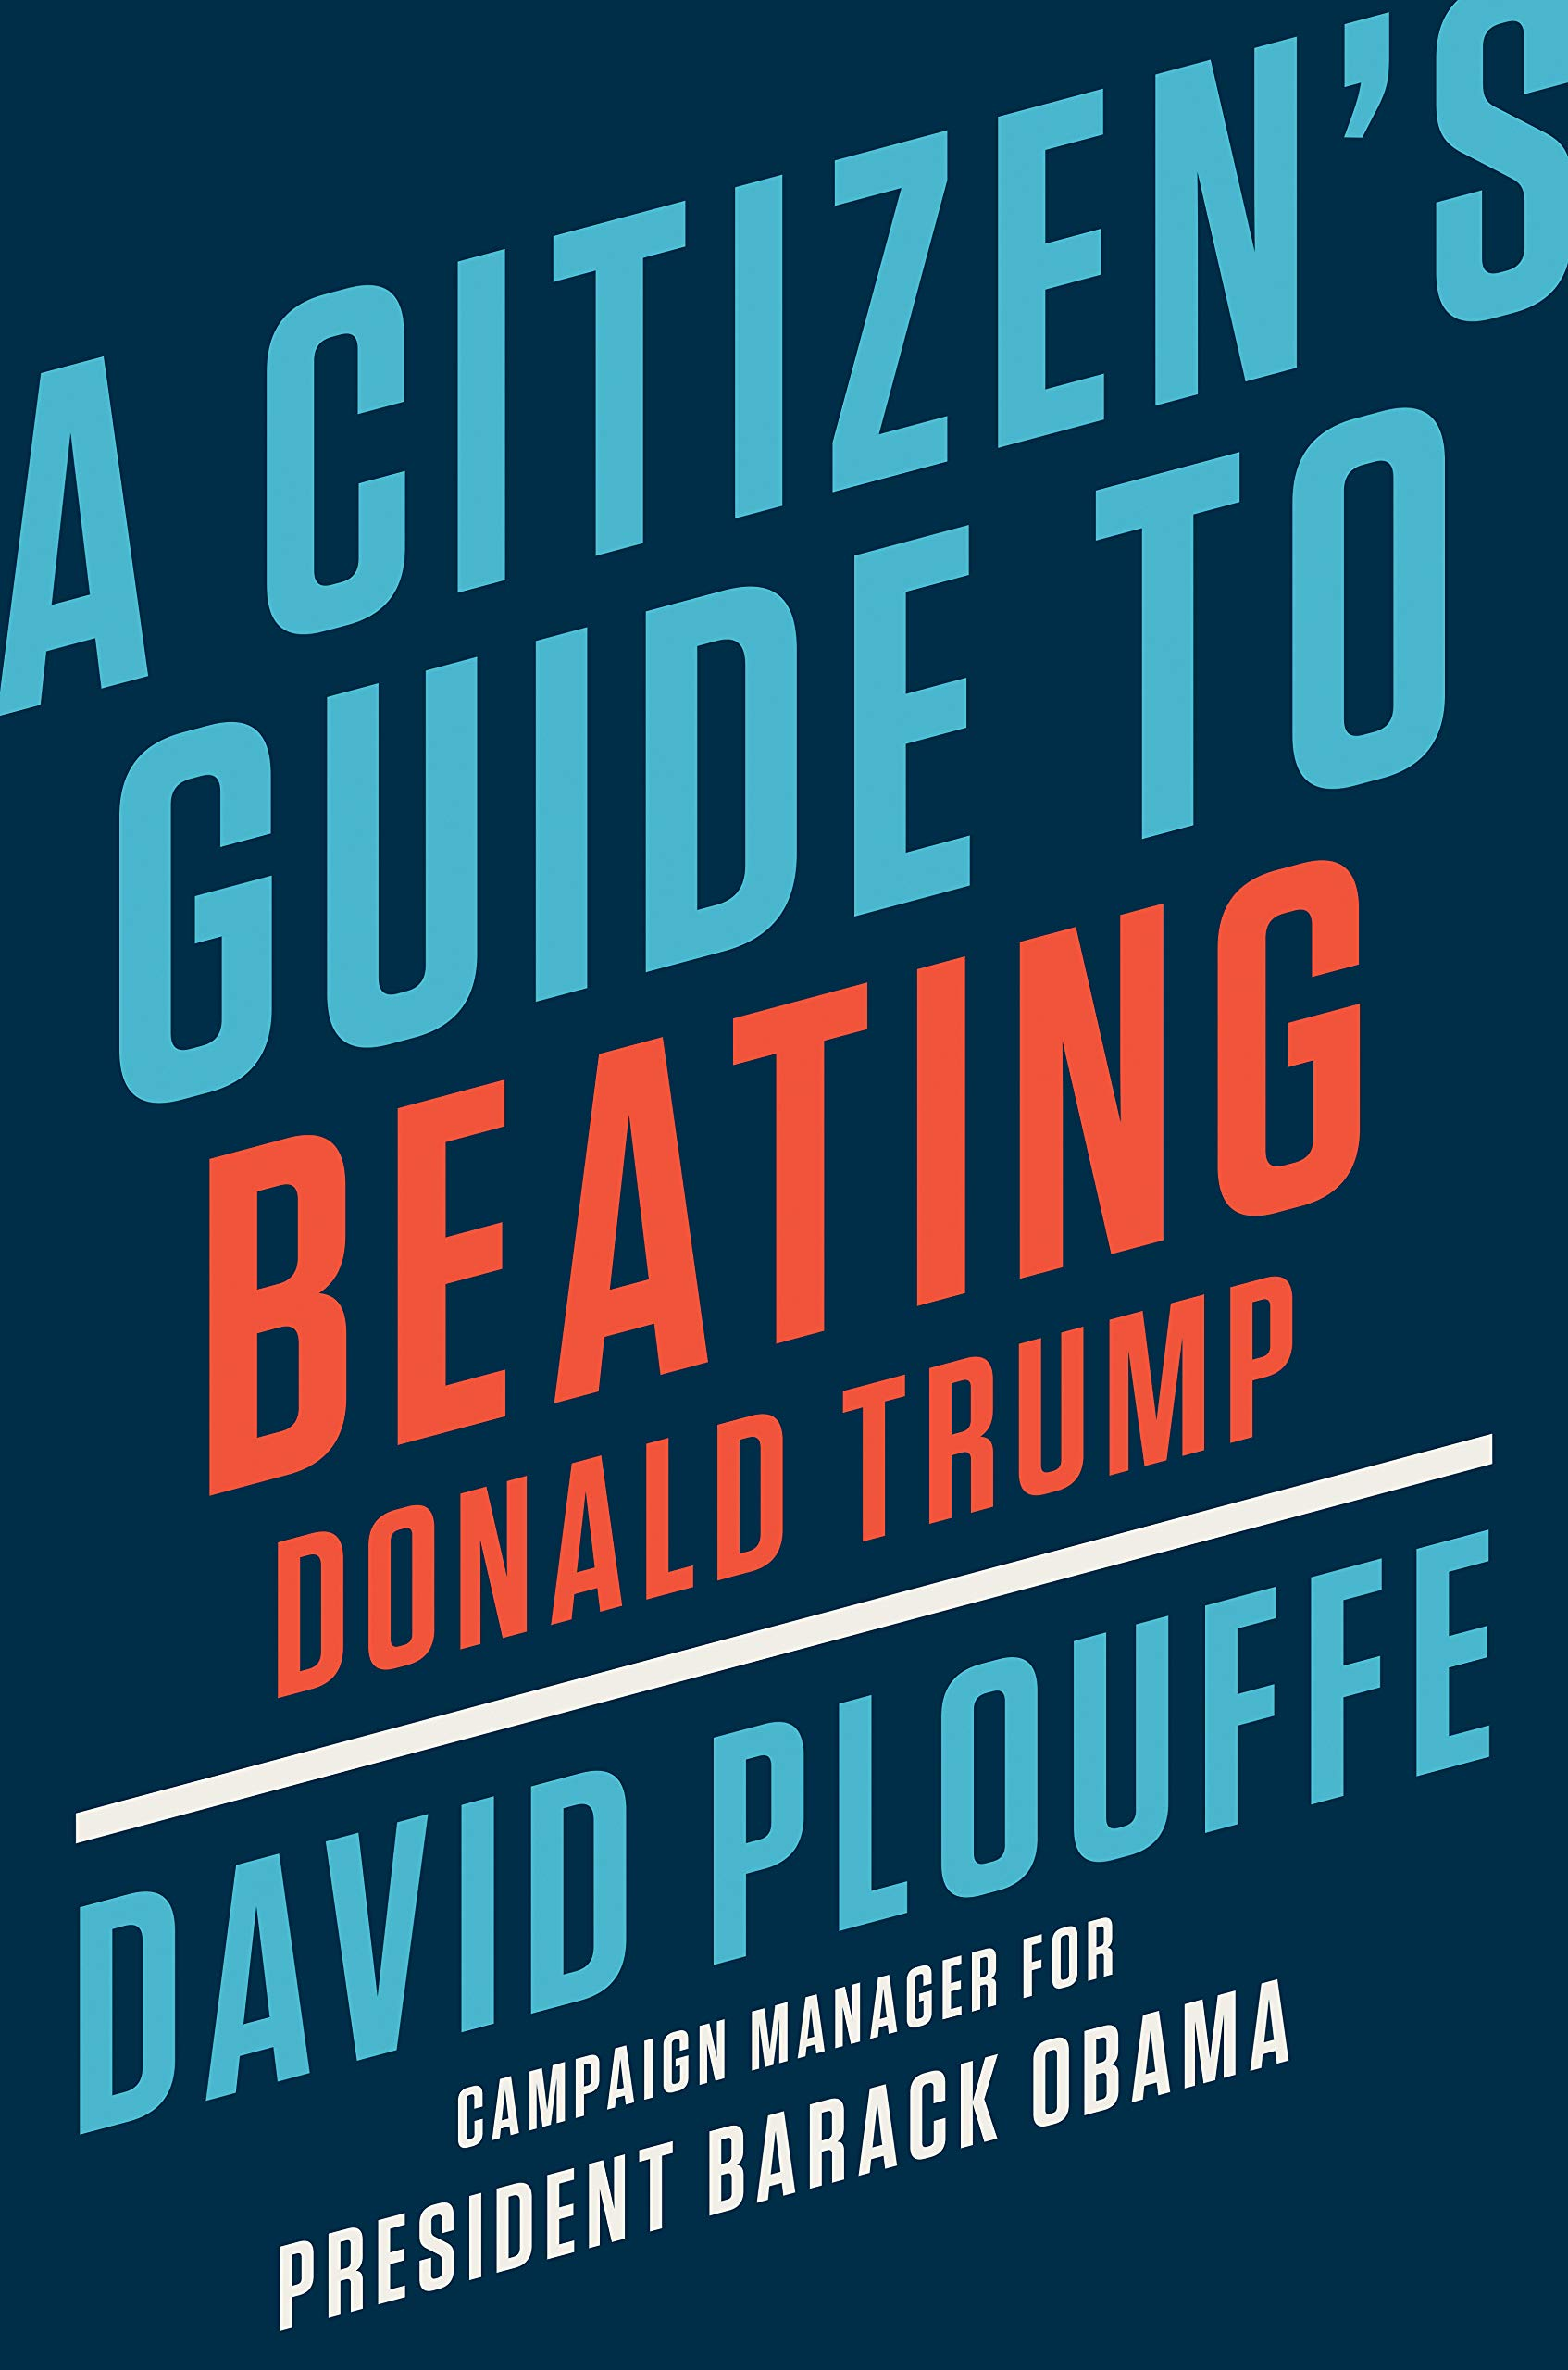 Obama Book List 2020.A Citizen S Guide To Beating Donald Trump David Plouffe